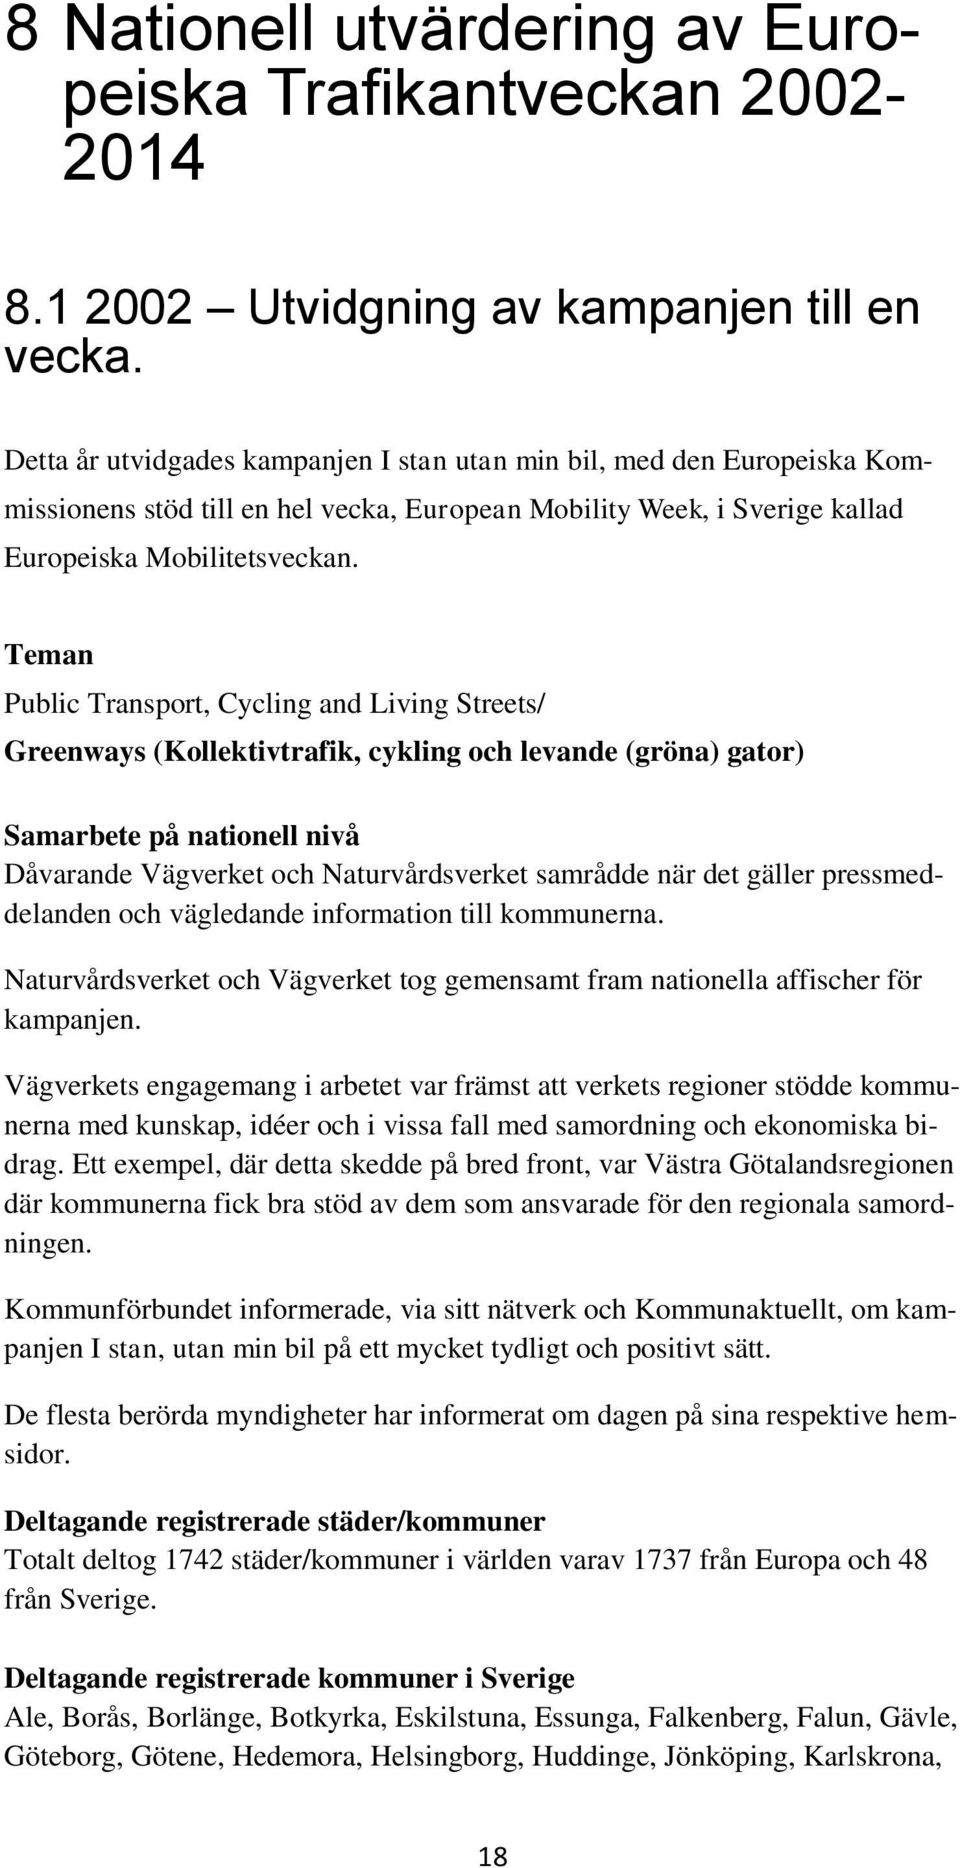 Teman Public Transport, Cycling and Living Streets/ Greenways (Kollektivtrafik, cykling och levande (gröna) gator) Samarbete på nationell nivå Dåvarande Vägverket och Naturvårdsverket samrådde när